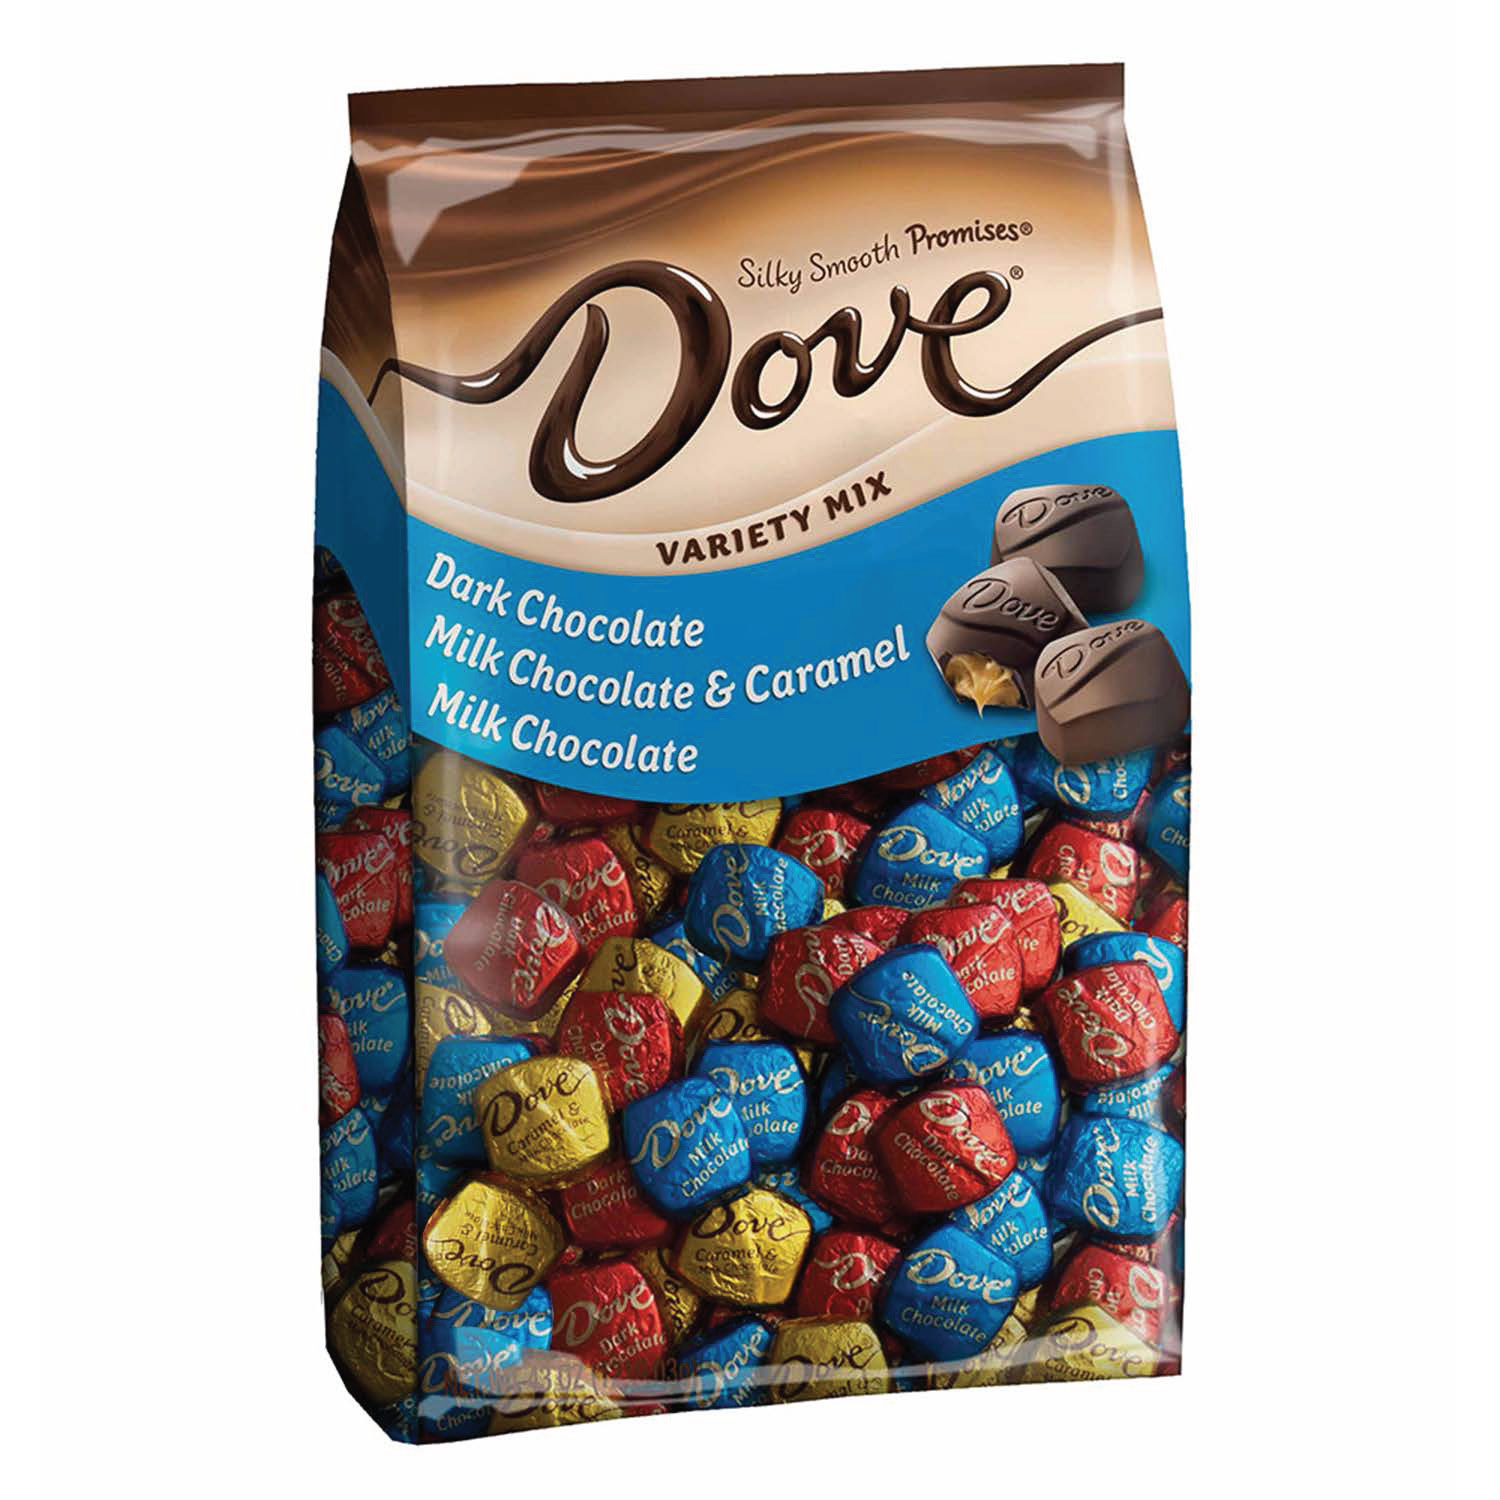 Dove Promises, Variety Mix Chocolate Easter Candy, 43.07 Oz, 153 Ct